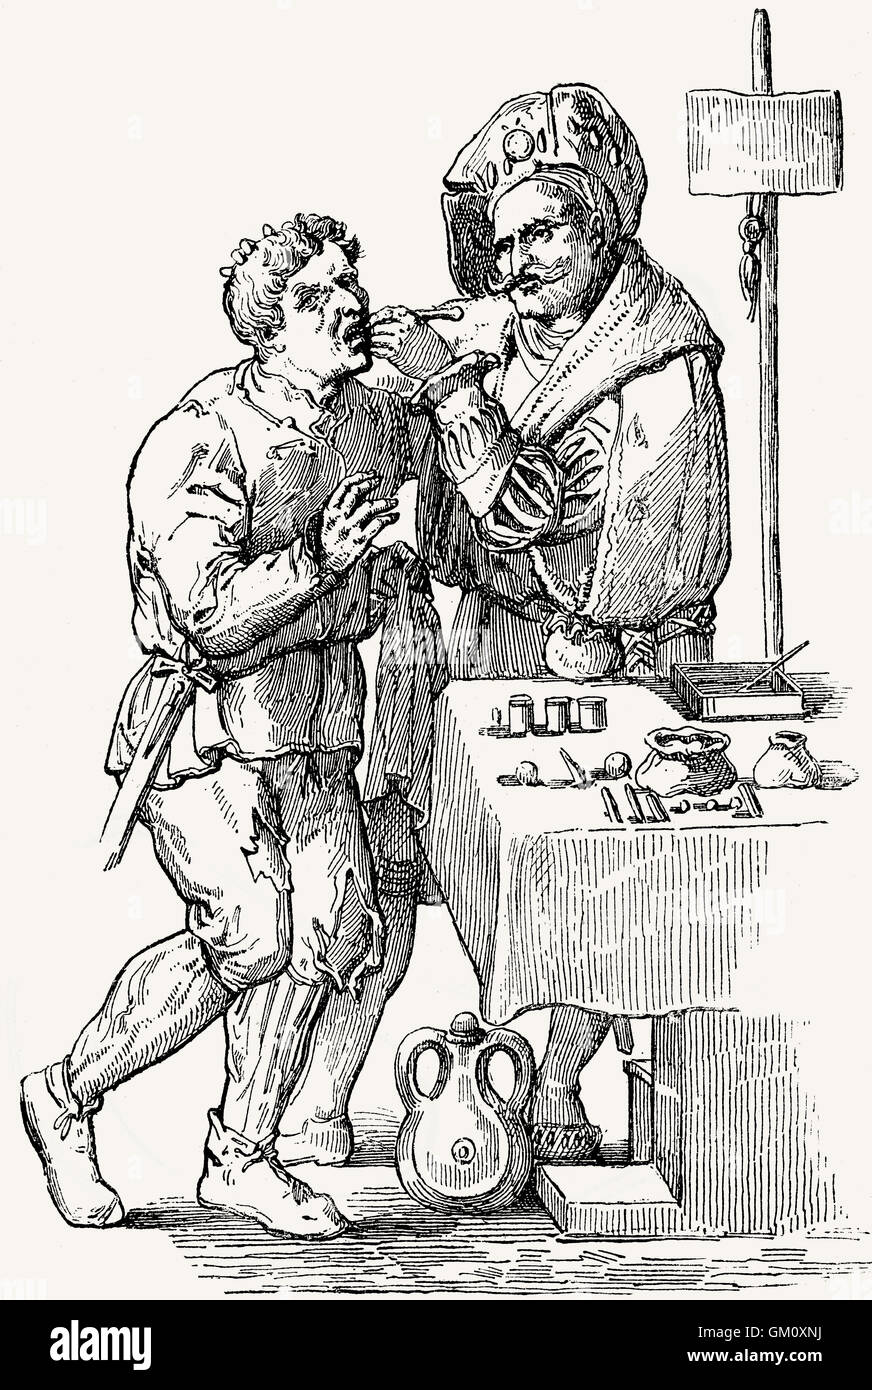 A dentist in the 17th century - Stock Image